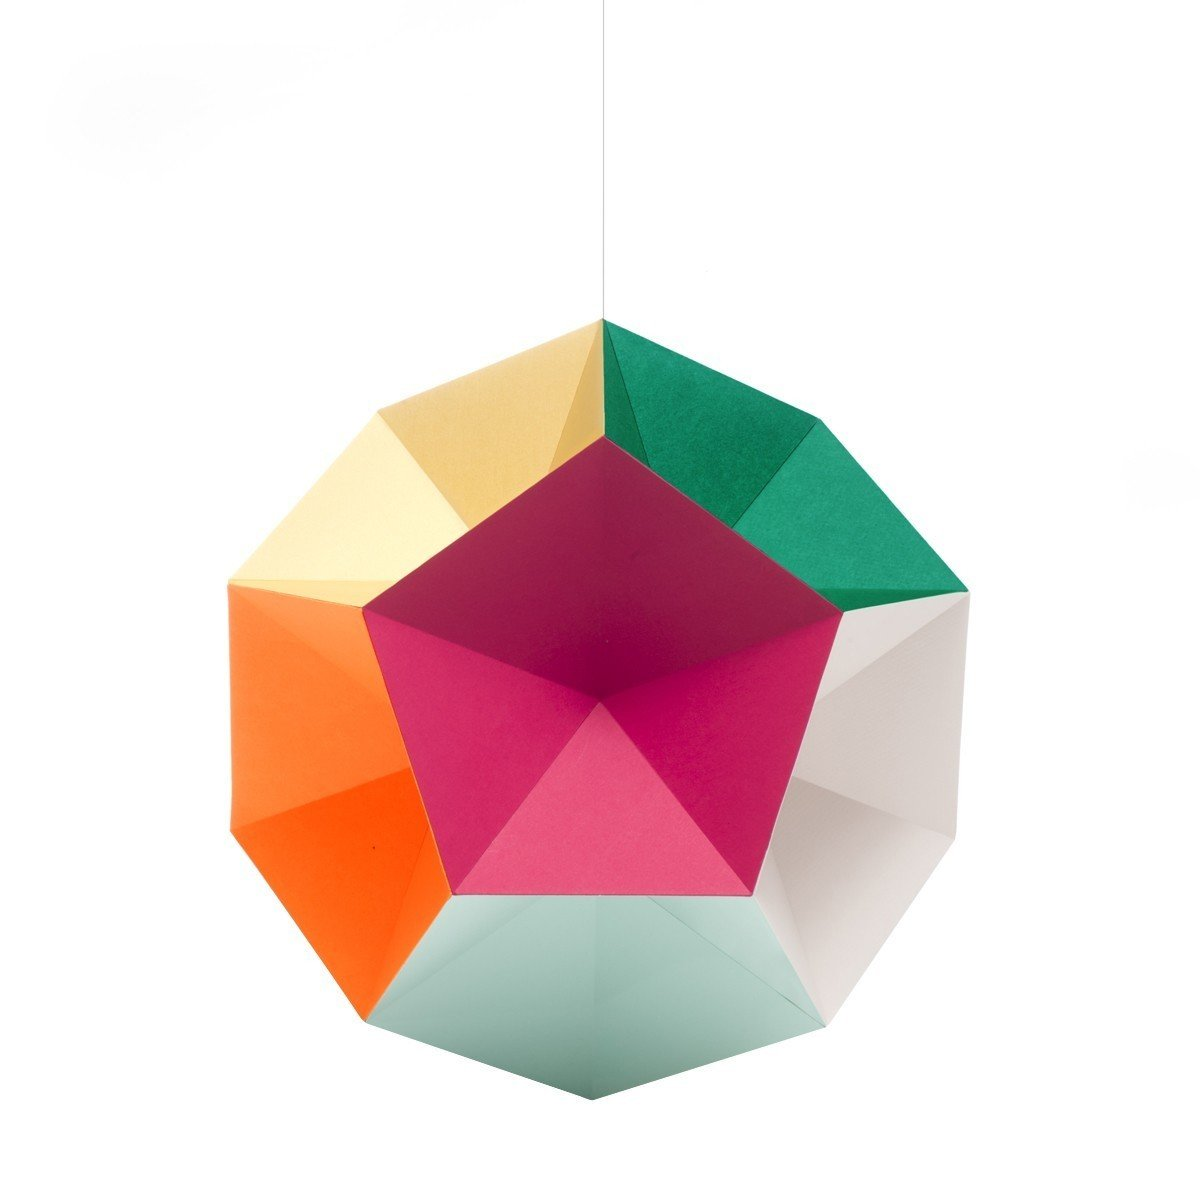 Themis Mobile Mono, $49 at the Dwell Store  This bright and playful dodecahedron is composed of twelve sides, all featuring a different vibrant hue—pastels, fluorescents and primaries. Hypnotizing and alluring, this distinctive hanging mobile is sure to inspire wonder in both the child and the child at heart.  Photo 7 of 8 in Dwell Store Gift Guide: For Kids